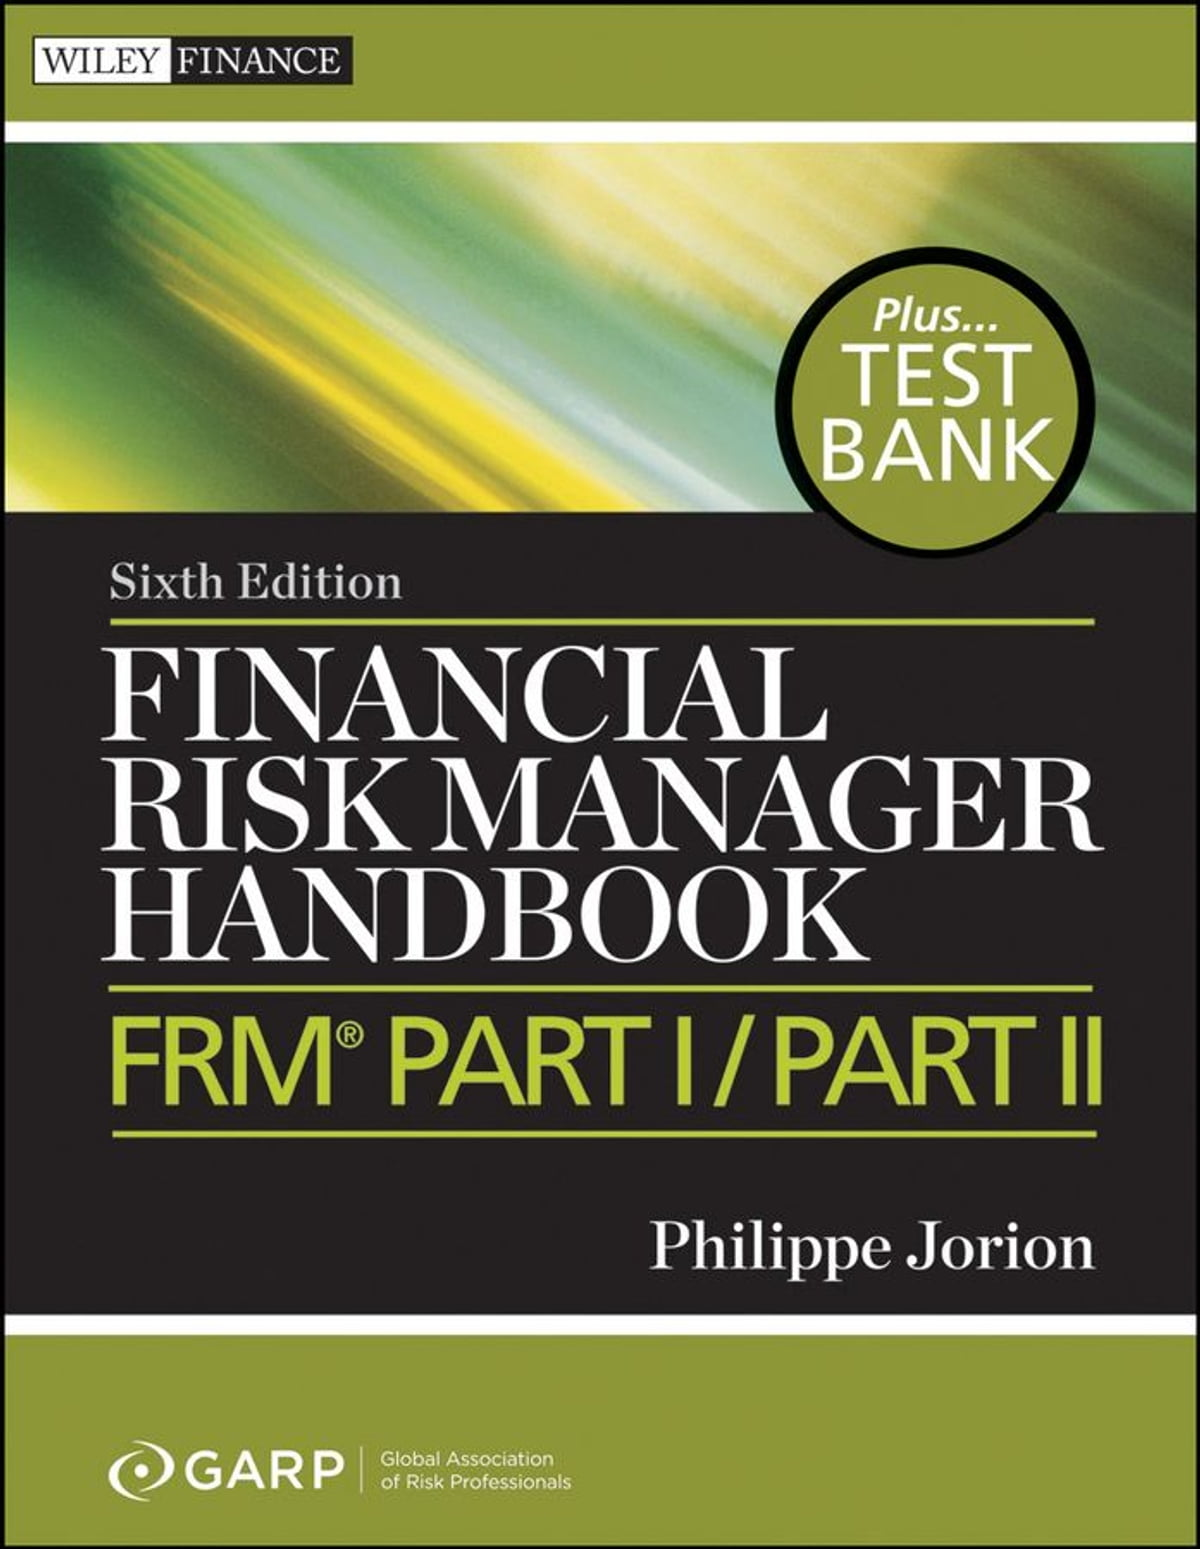 philippe jorion frm handbook 7th edition pdf free download